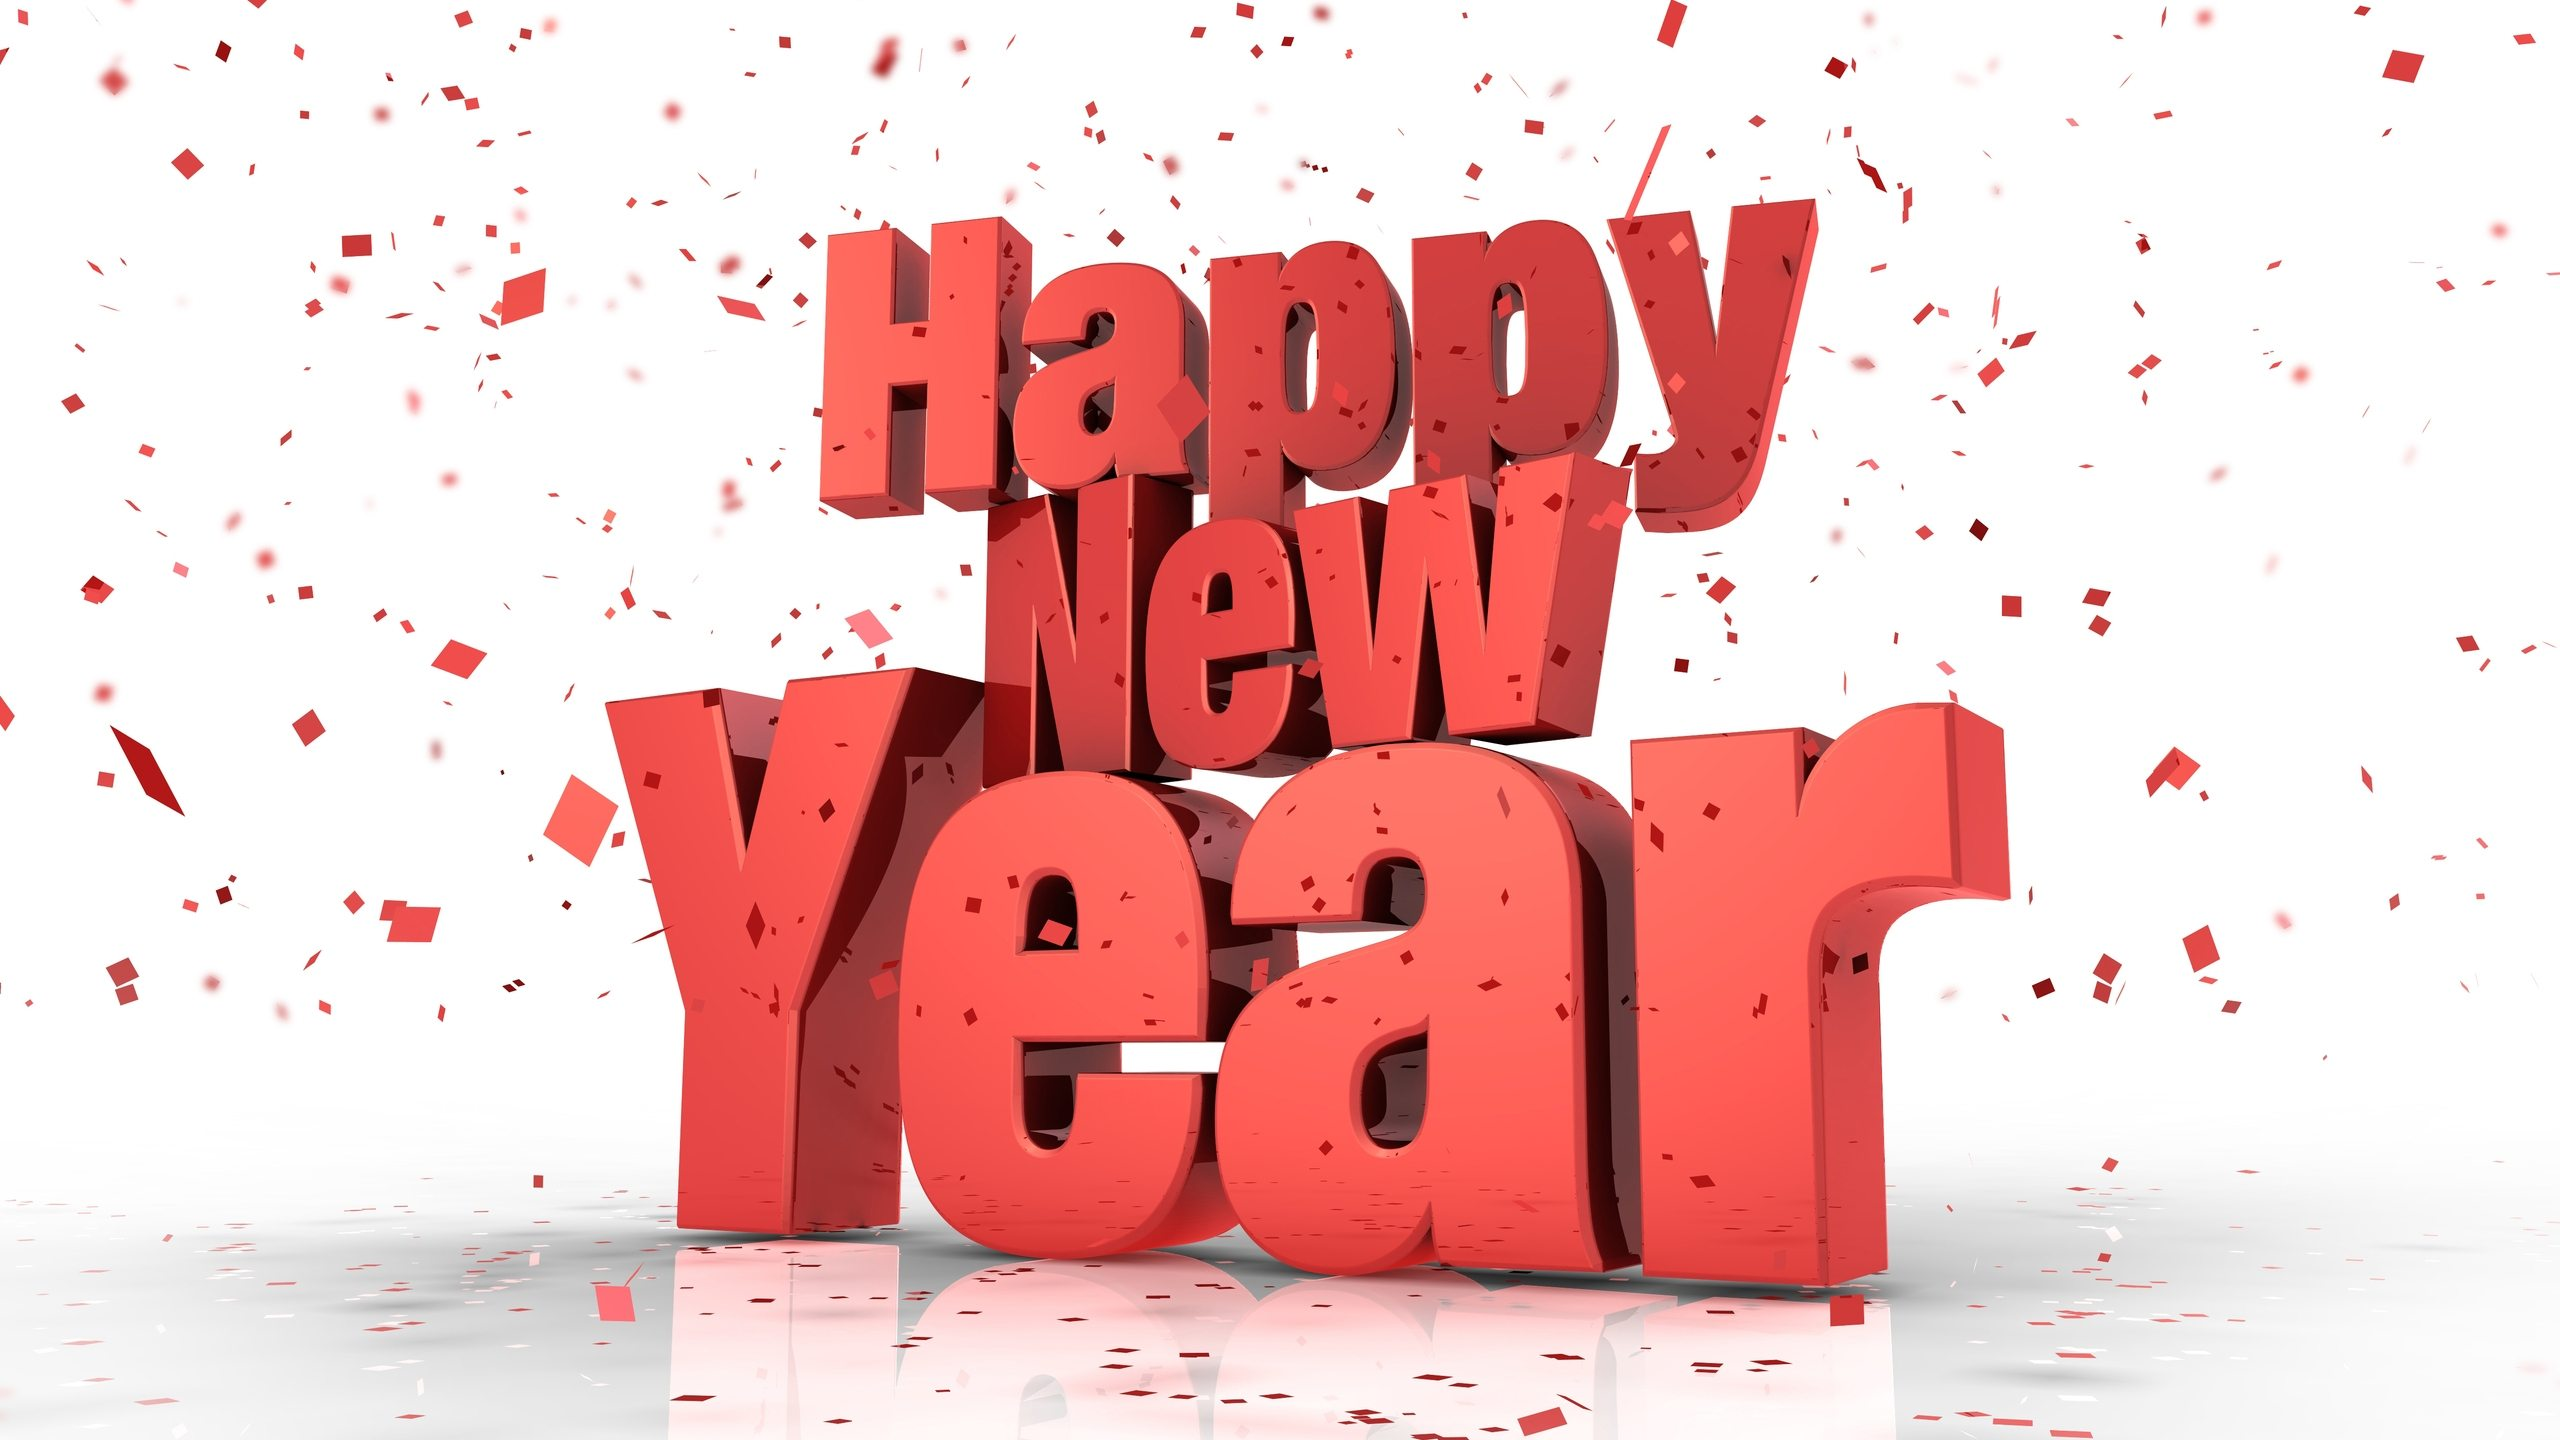 Happy new year from concise wealth concise wealth management ltd new year greetings kristyandbryce Gallery